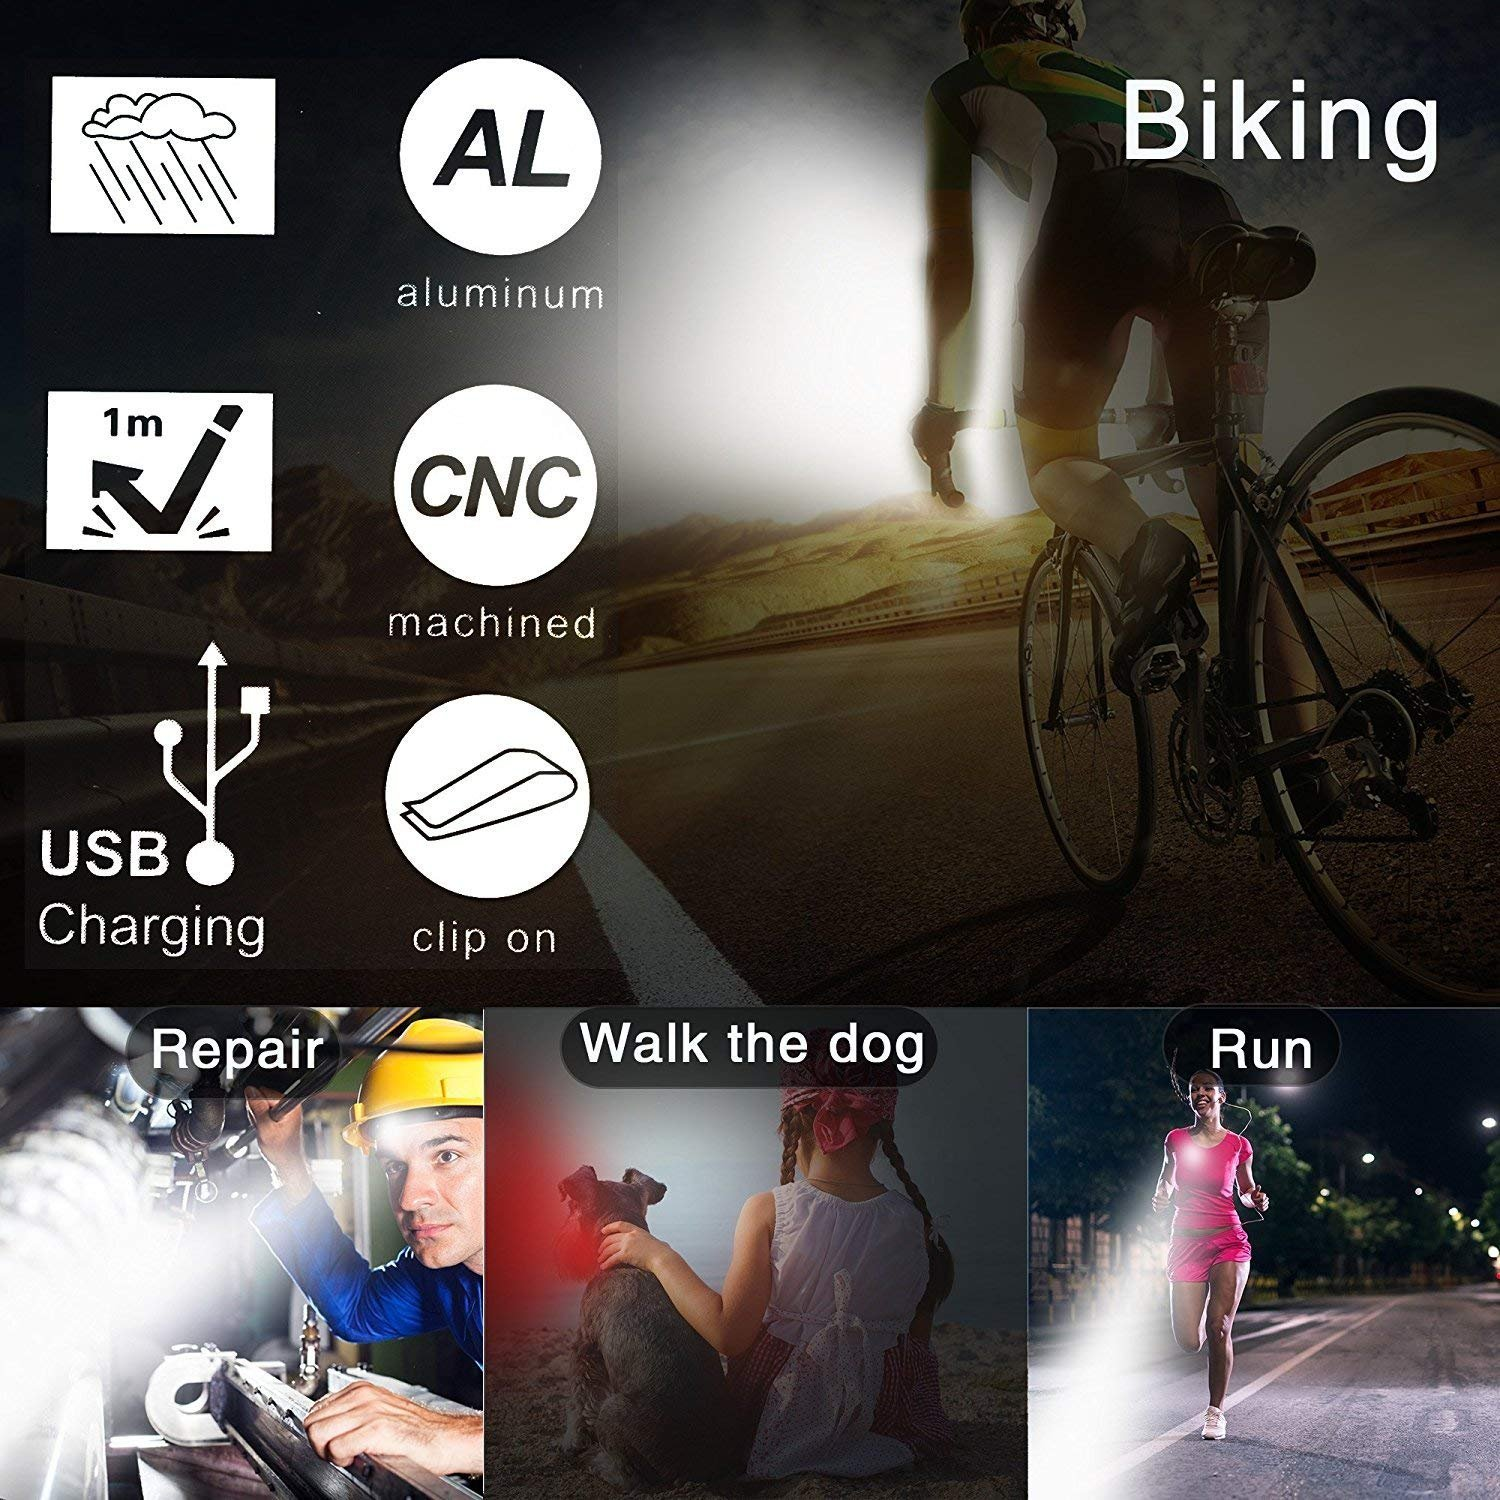 4 Light Mode Options Akale Rechargeable Bike Light Set Easy to Install for Kids Men Women Road Cycling IPX4 Waterproof Bike Headlight LED Bicycle Lights Front and Rear 650mah Lithium Battery